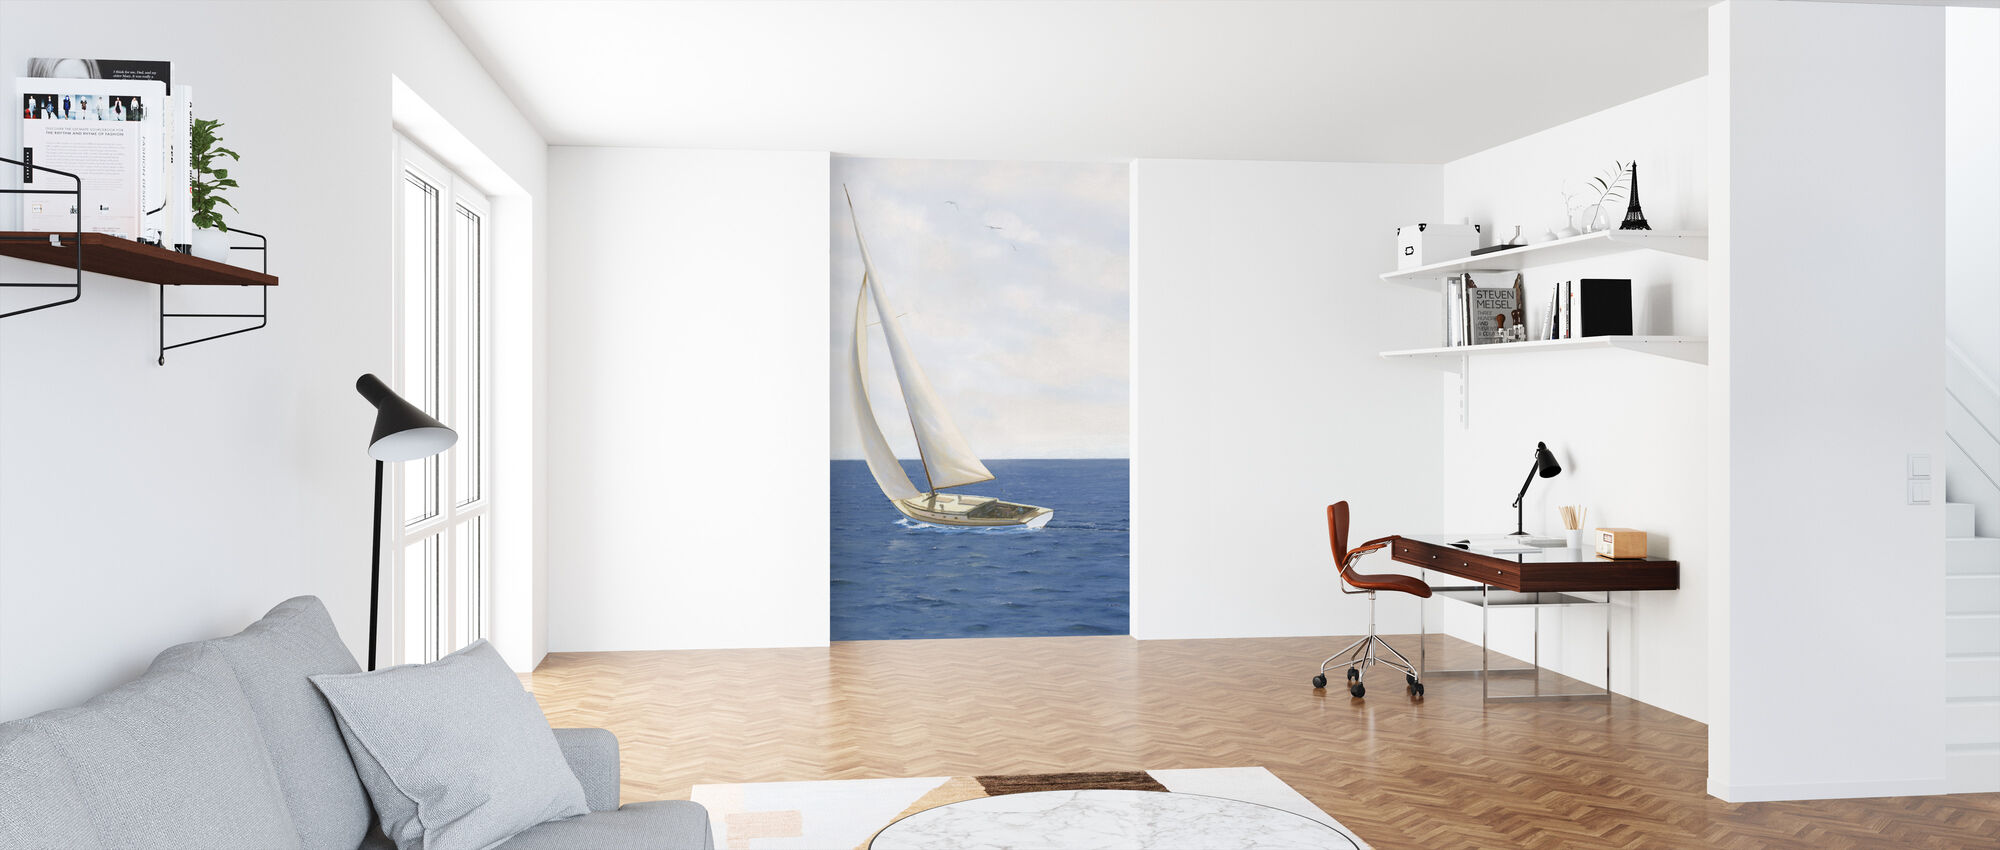 A Day at Sea II - Wallpaper - Office